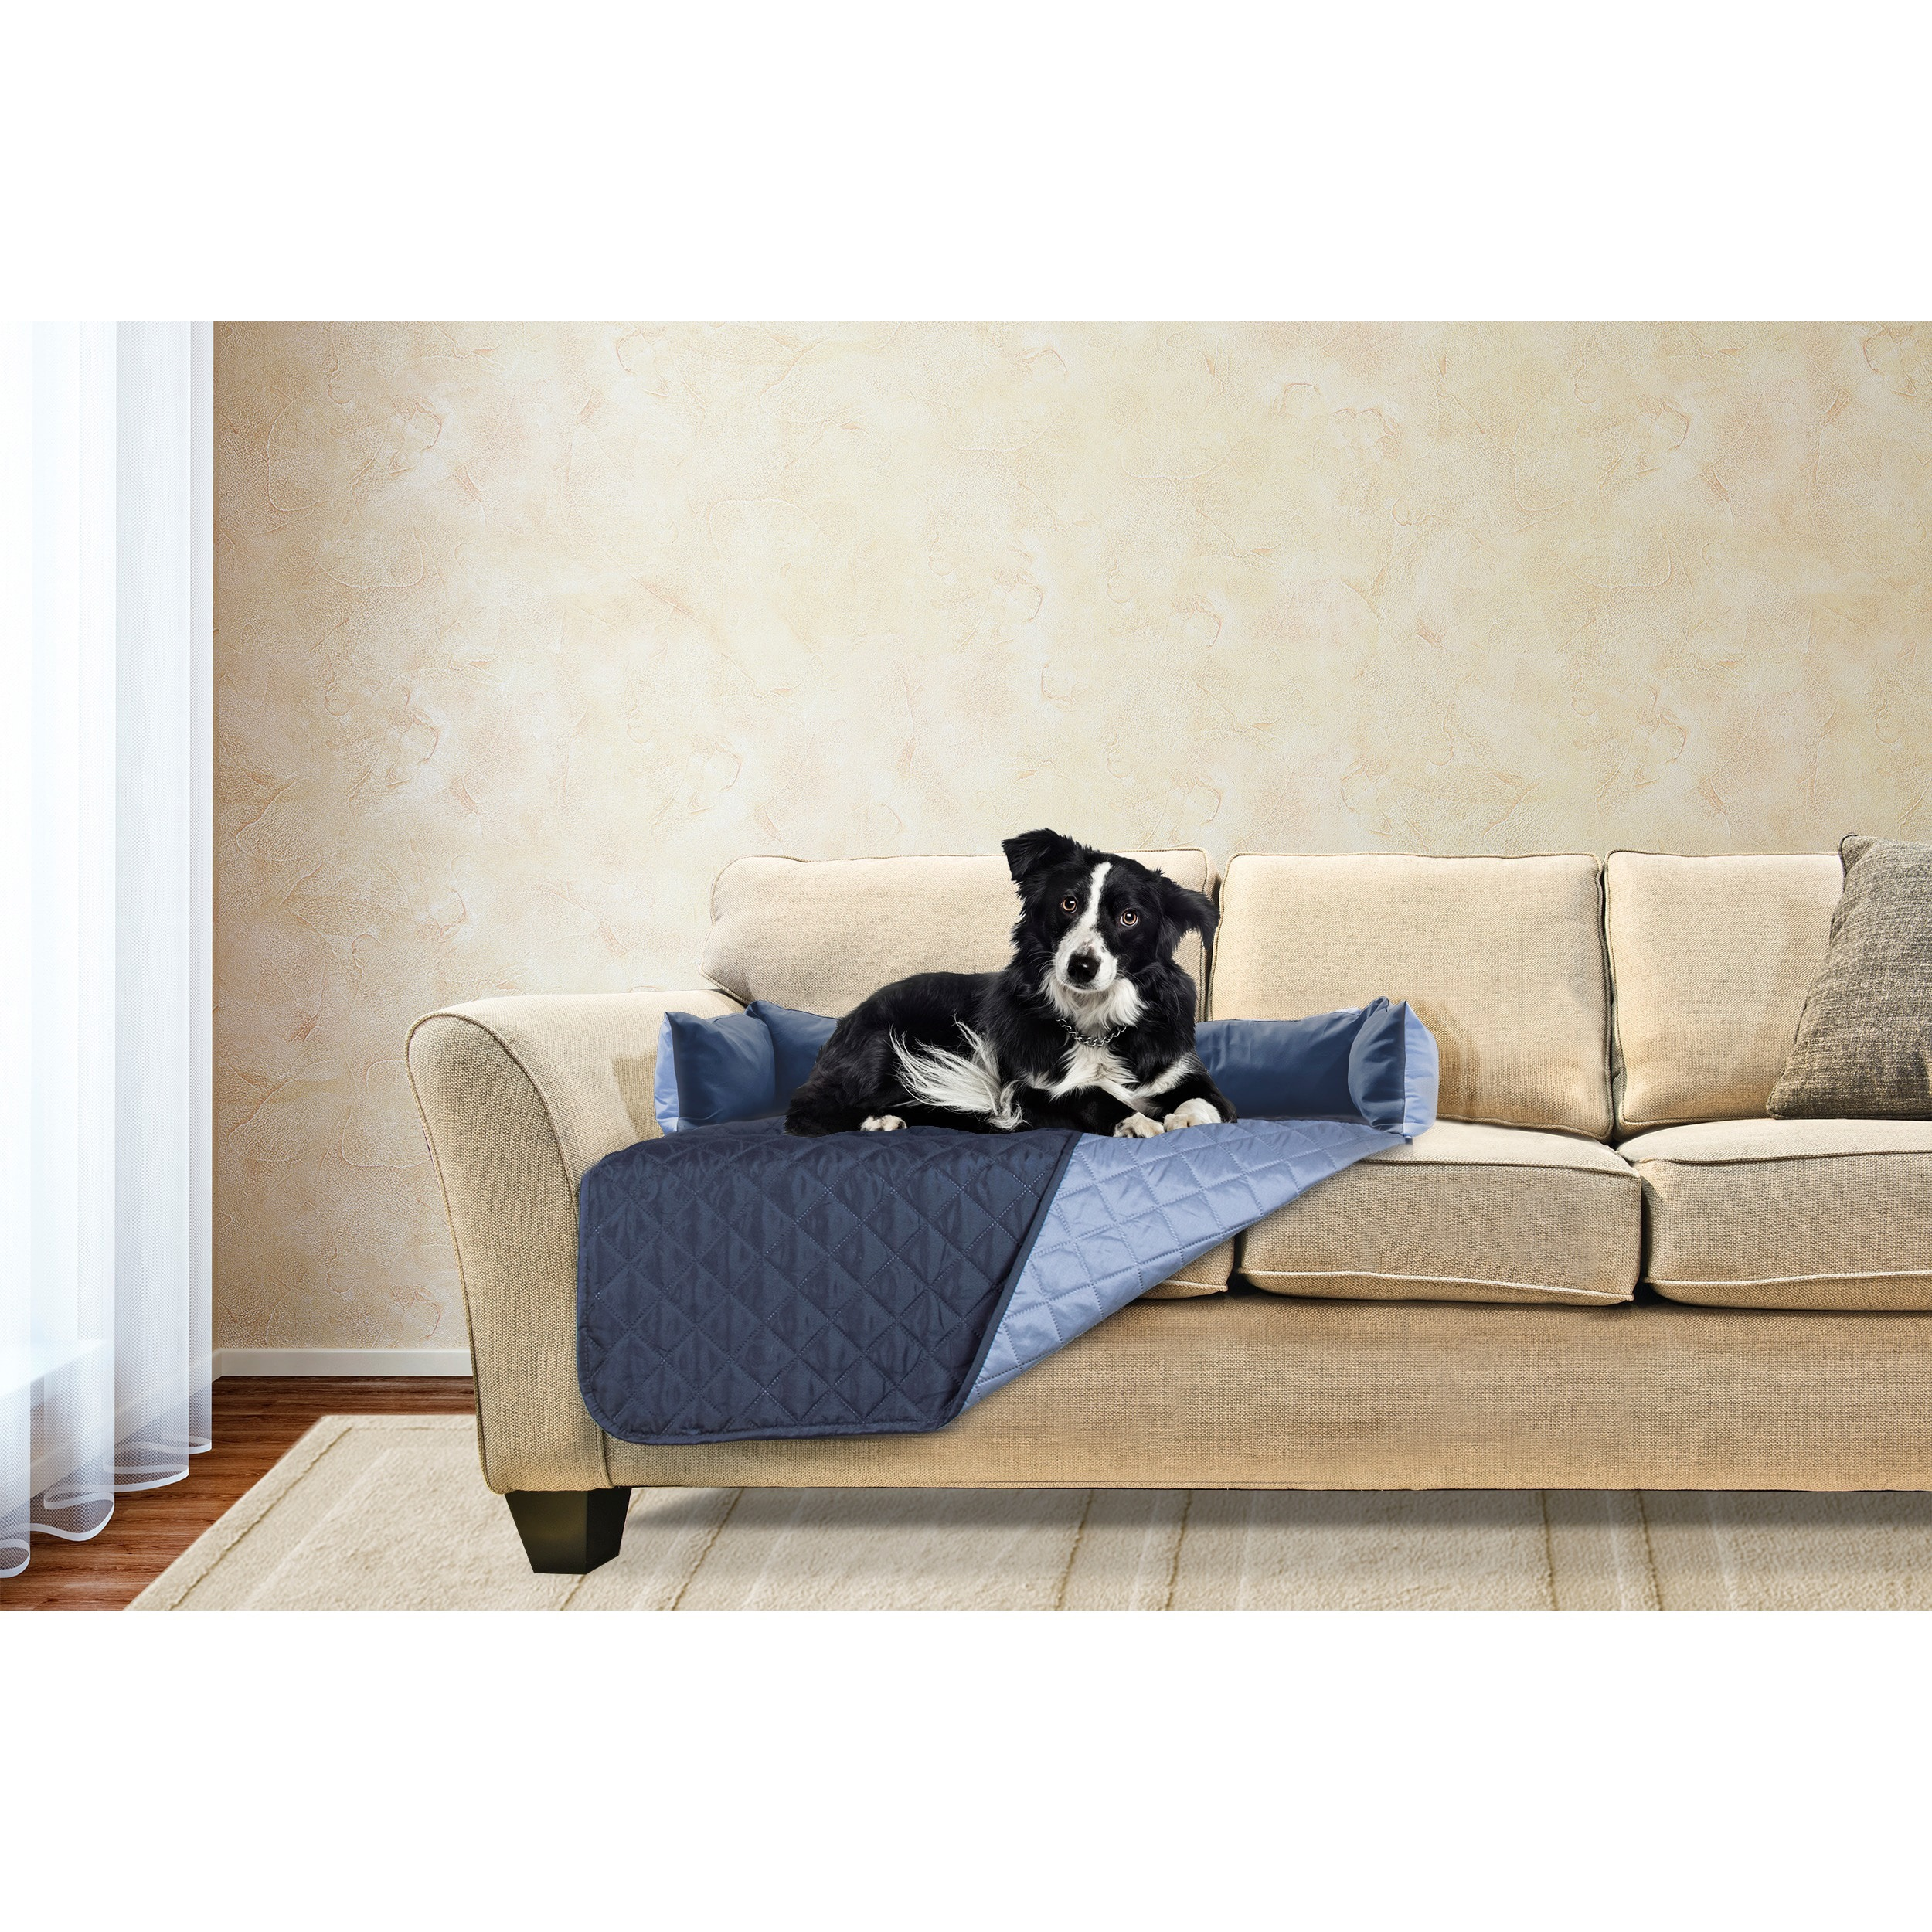 FurHaven Sofa Buddy Pet Bed Furniture Cover (Gray/Mist, M...